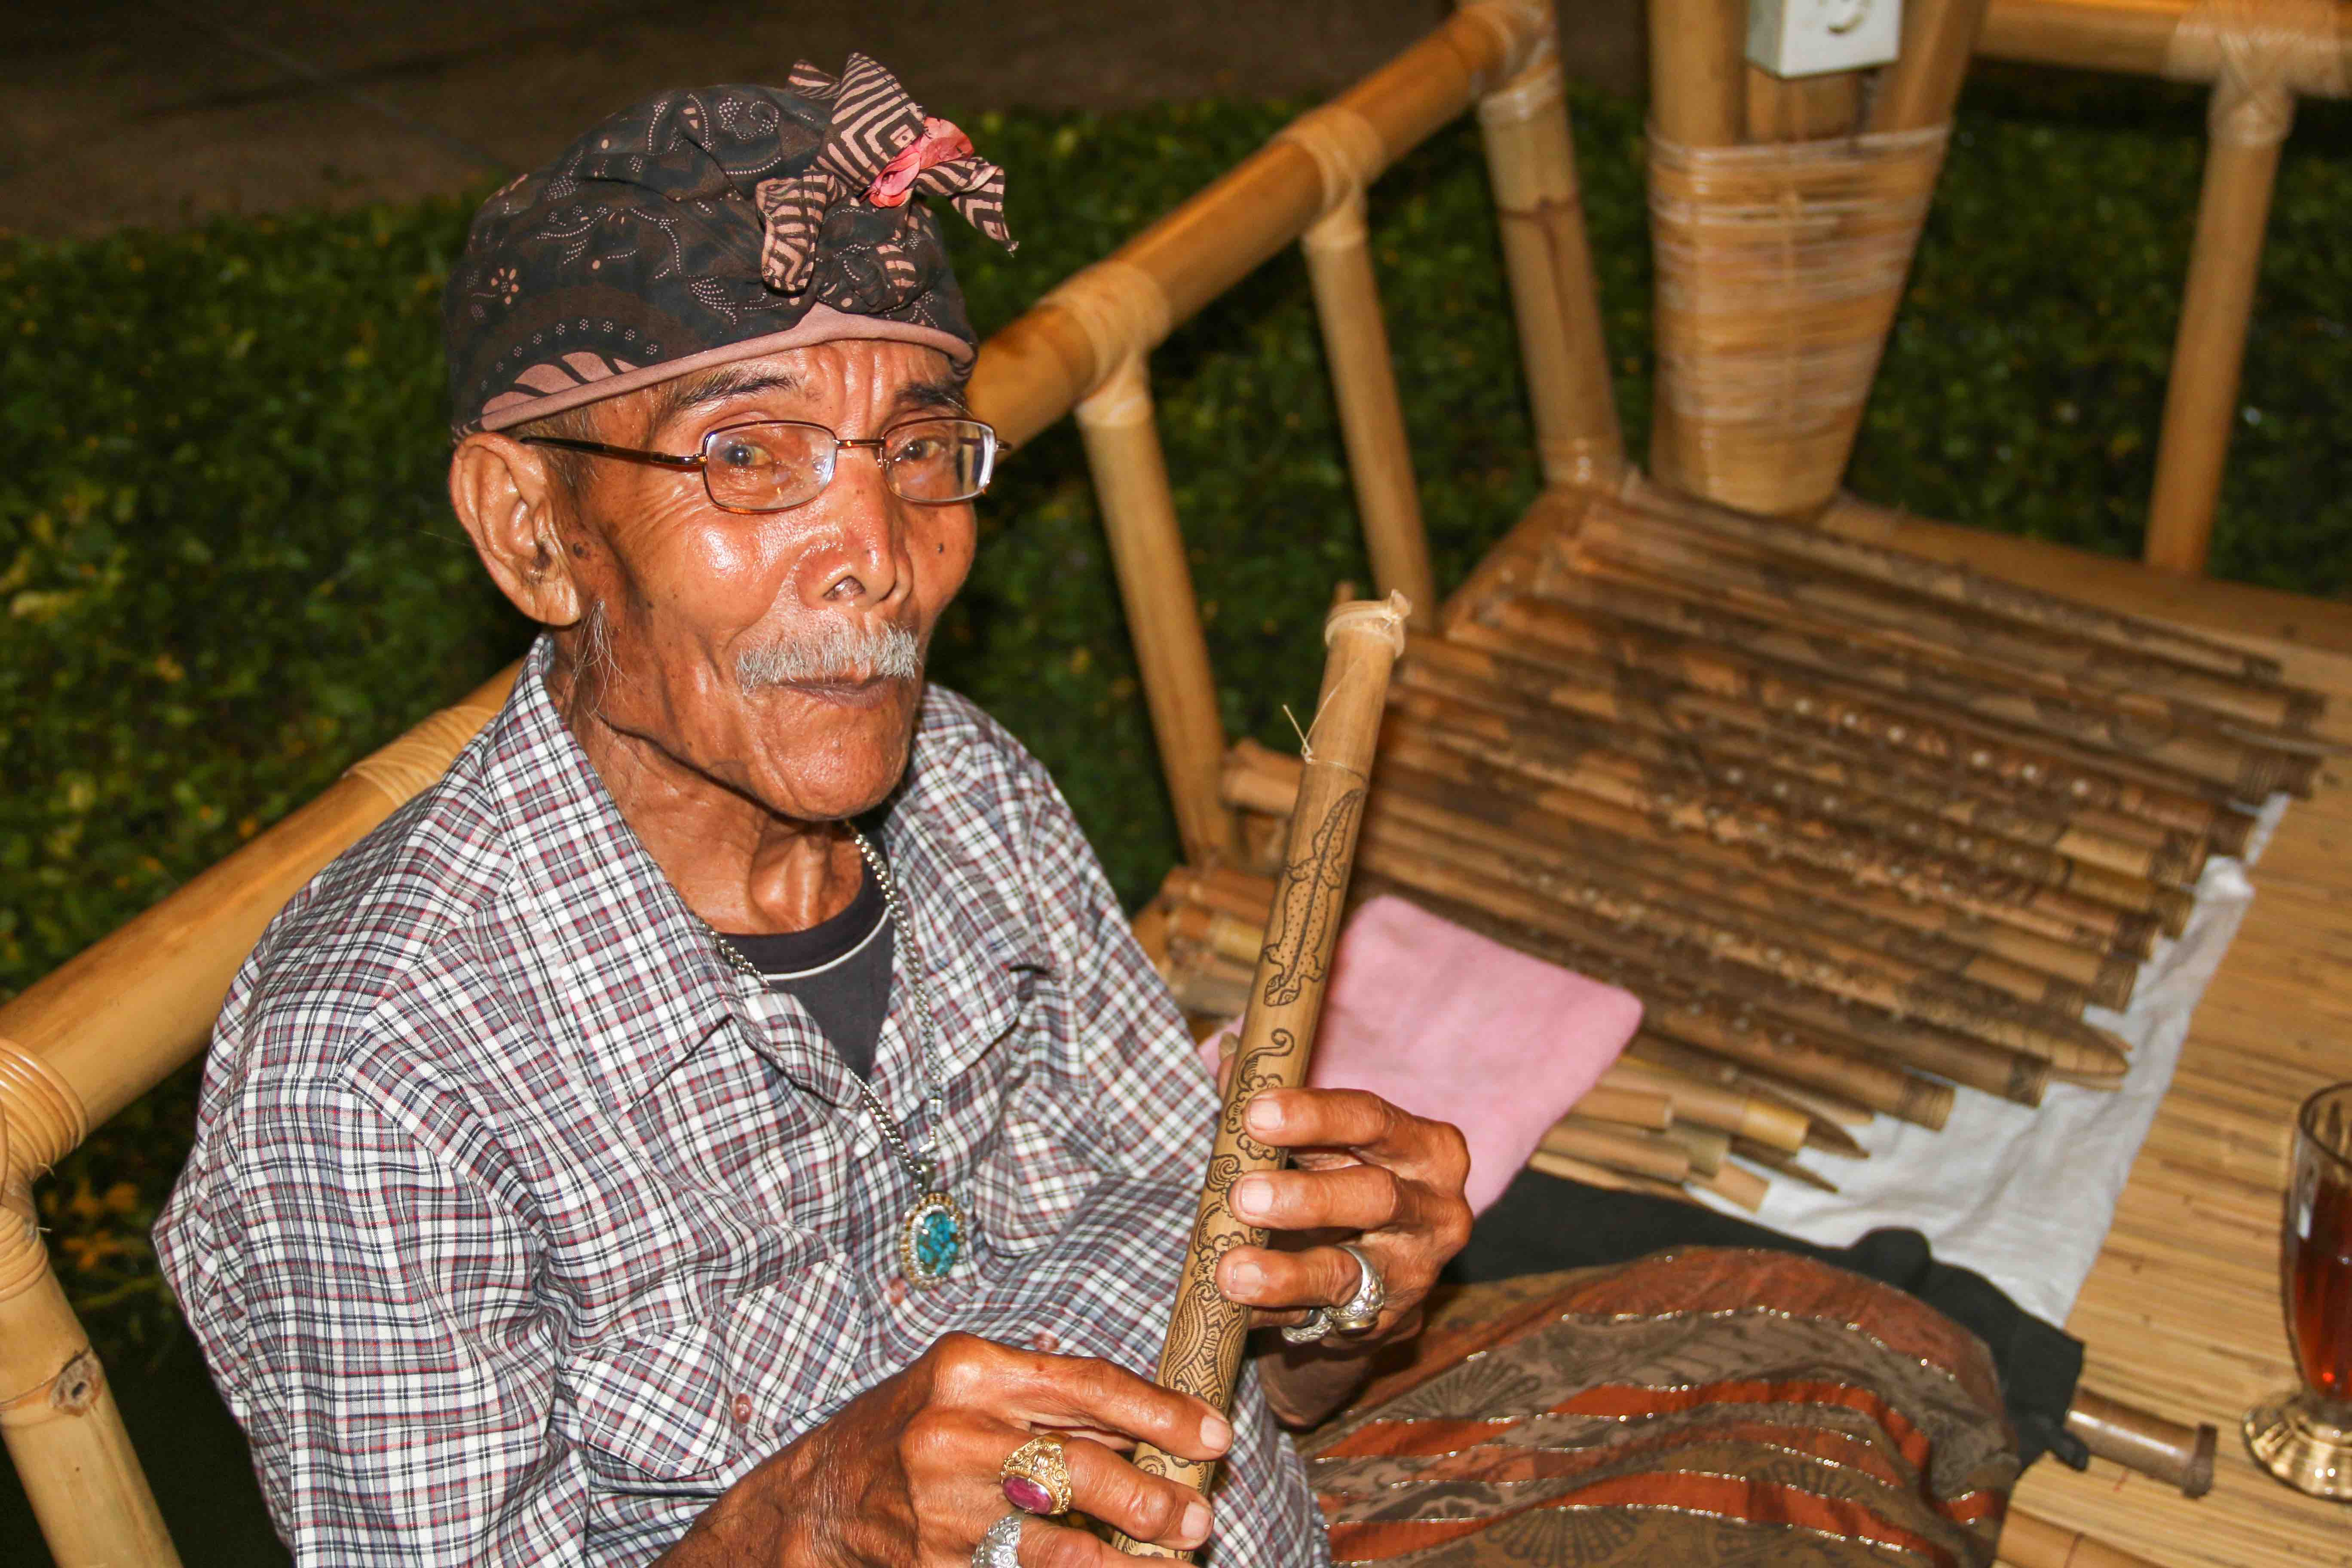 The 100-year Old Flute Maker in Bali